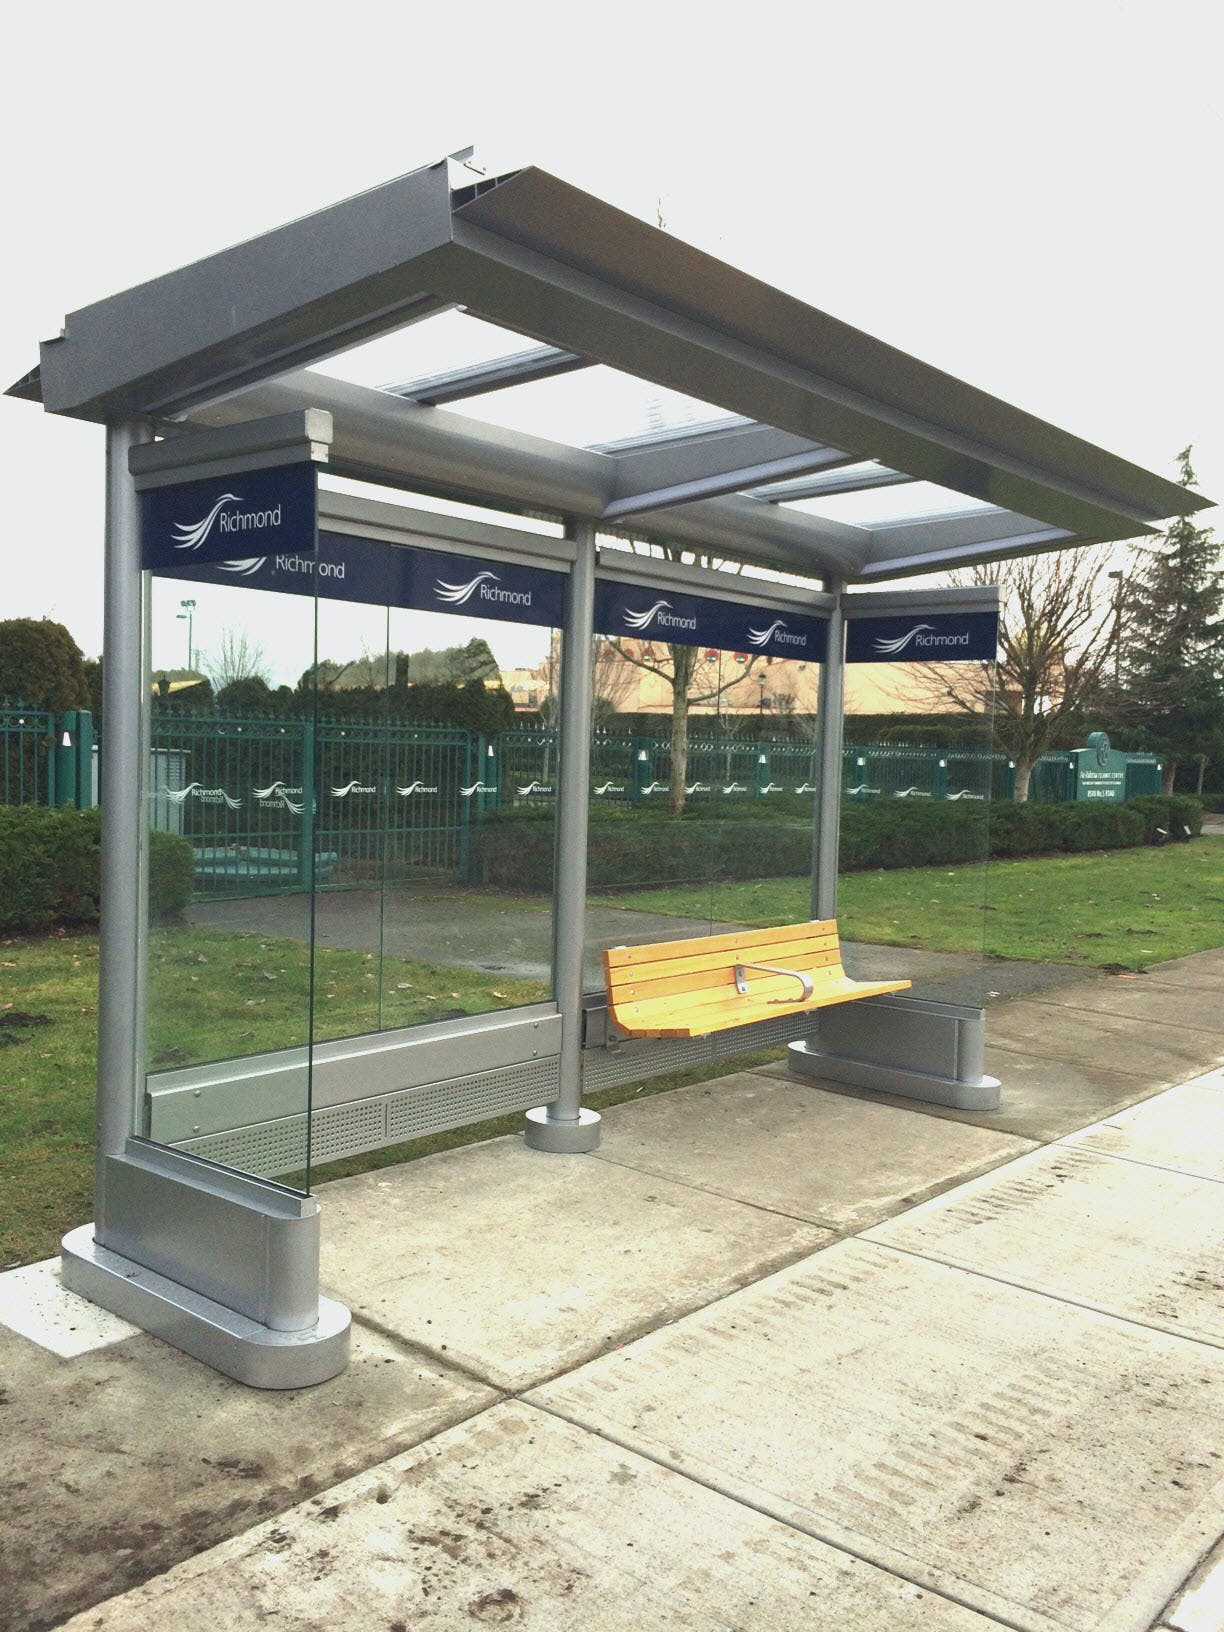 City-owned transit shelter